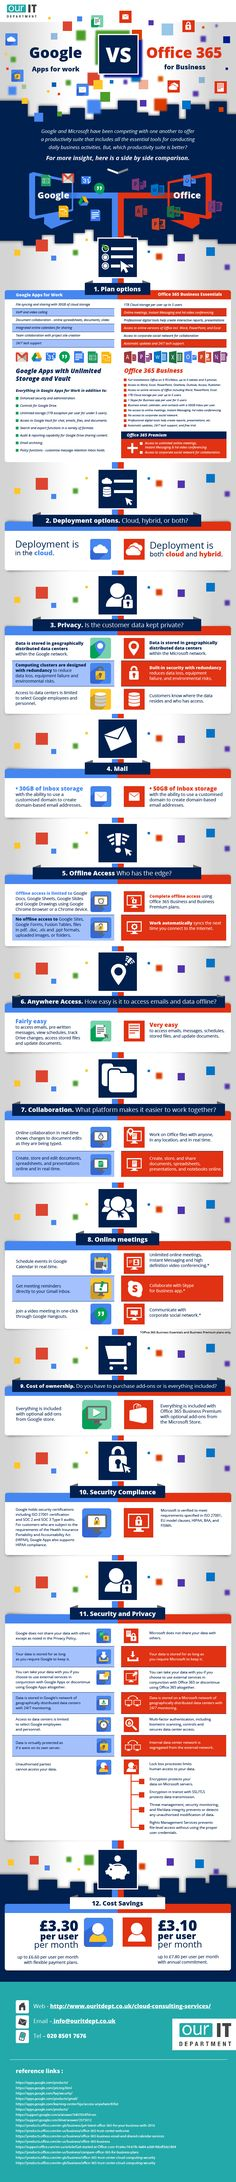 Google Apps vs Office365 Infographic